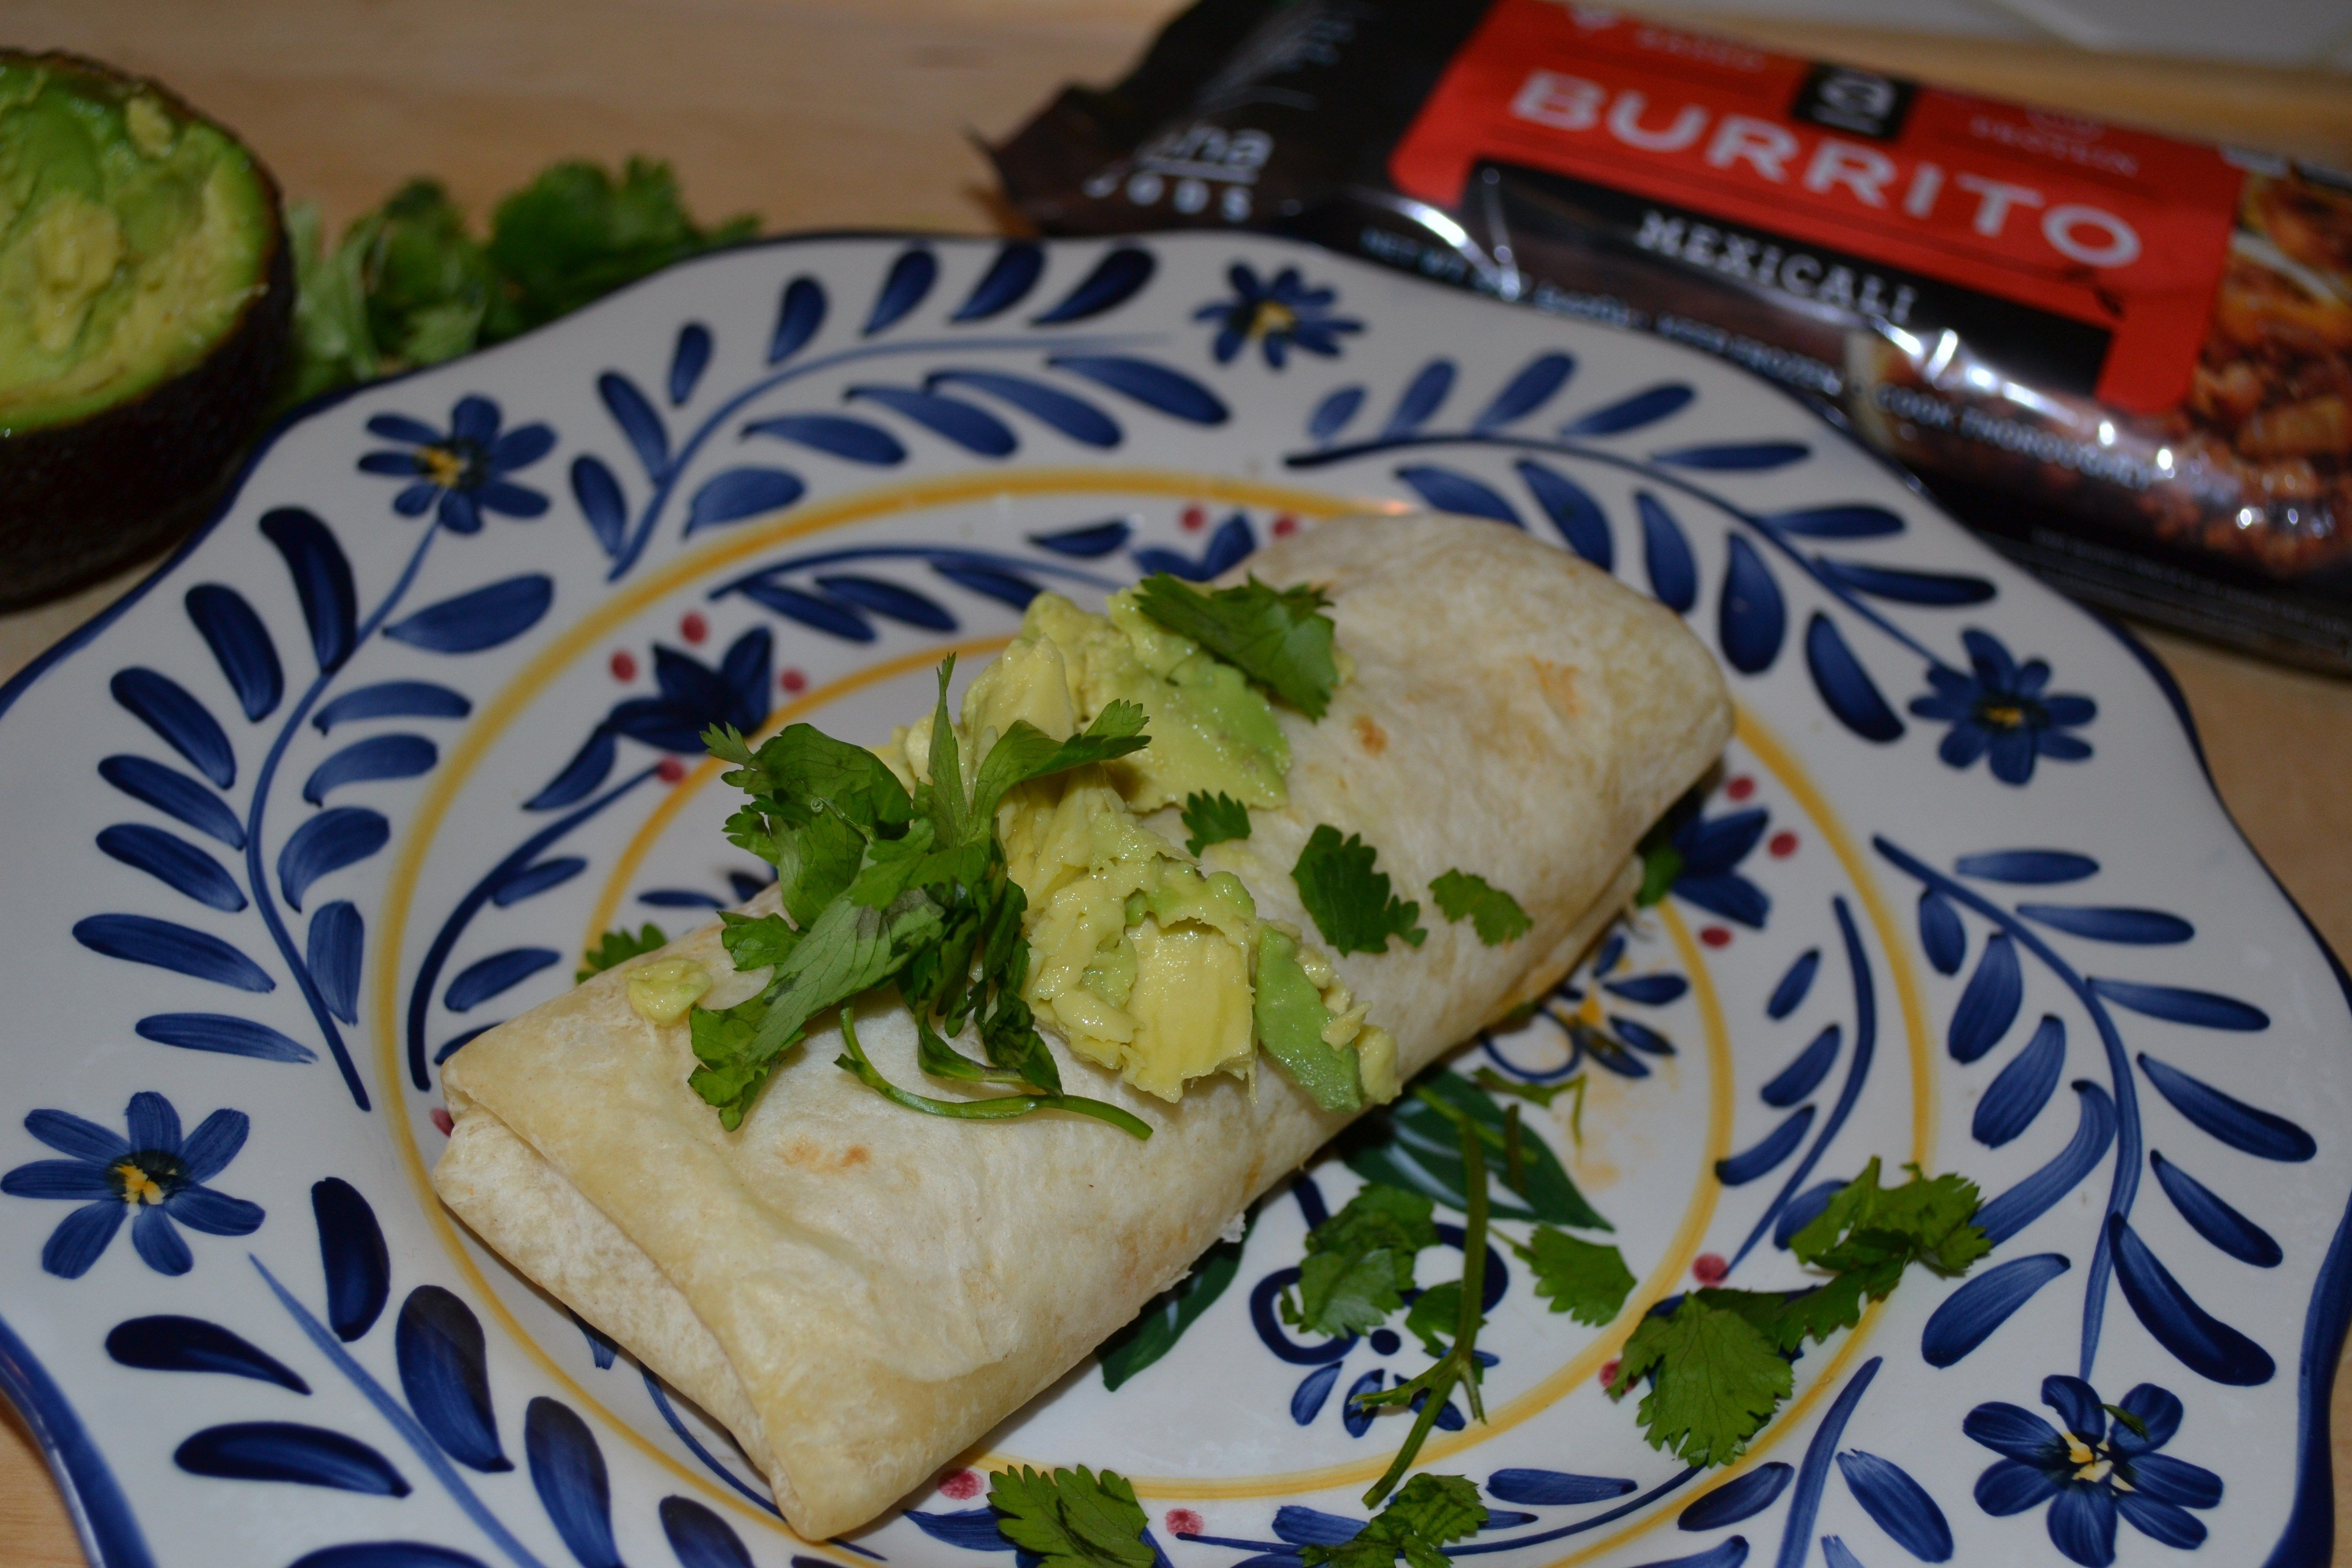 Go meatless with Alpha Burritos! & enter to win a giftcard